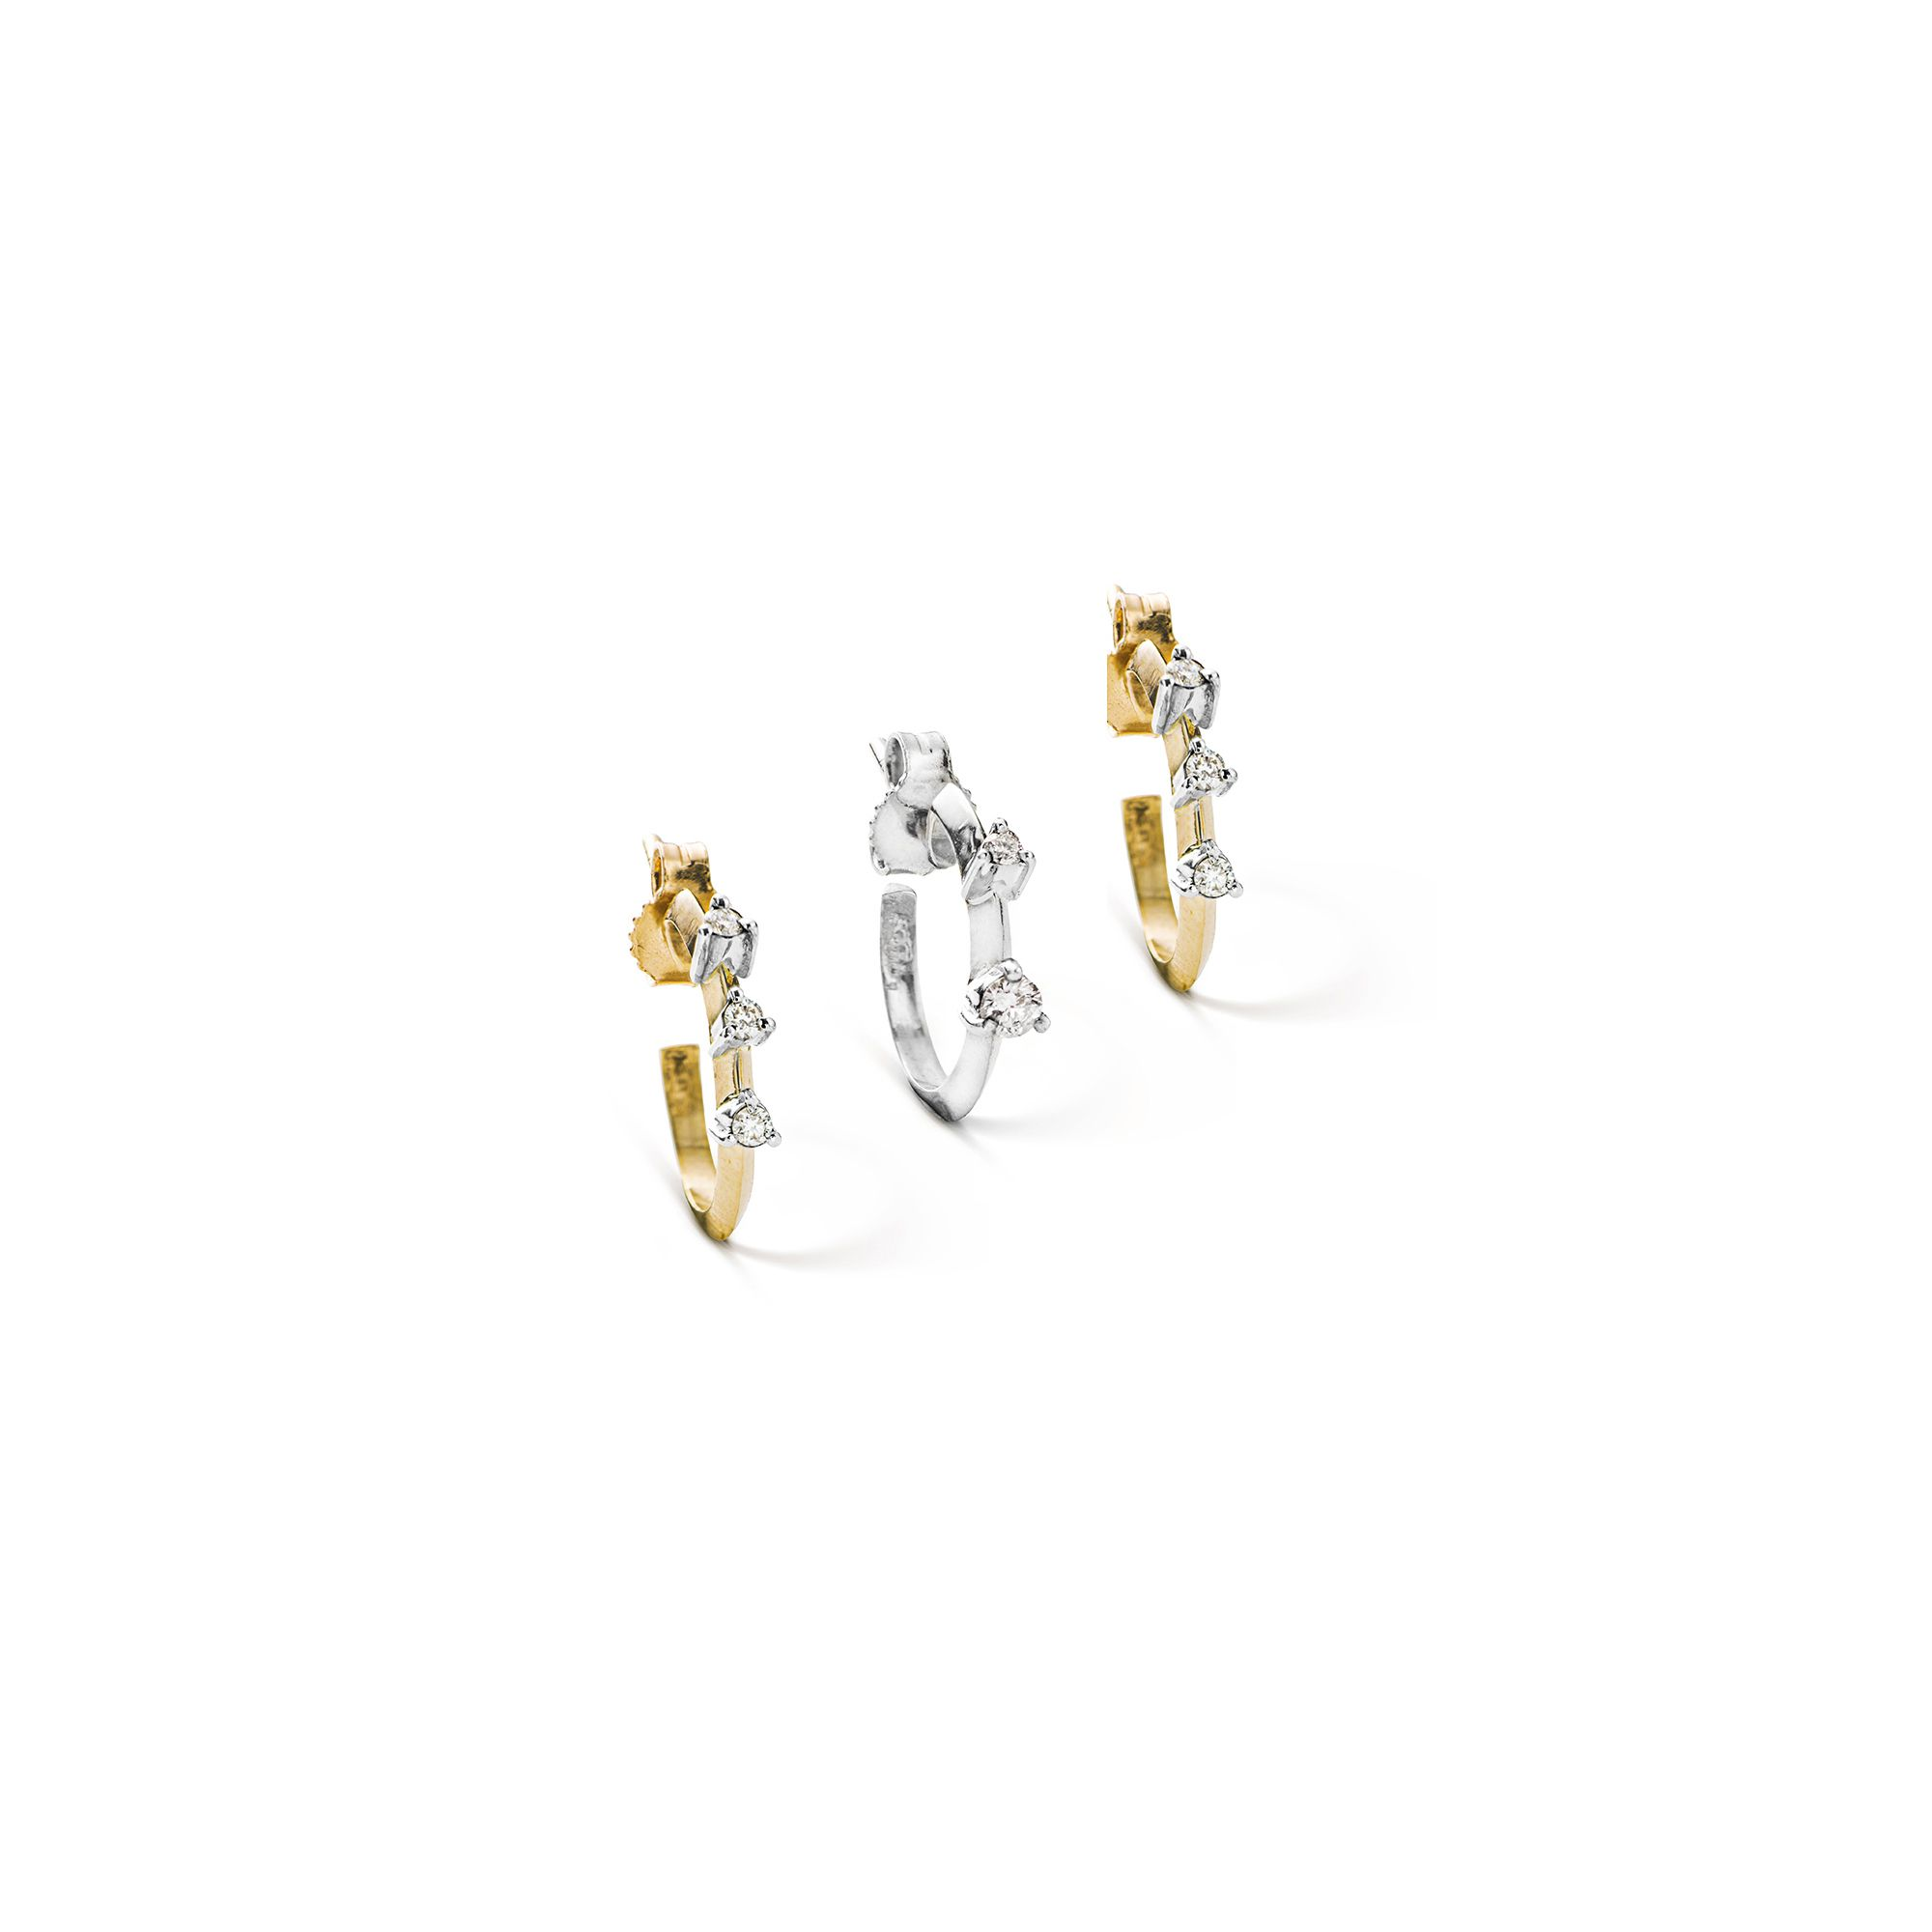 Set of three bicolor gold 'Balance' hoop earrings three small hoop earrings in yellow and white gold and diamonds